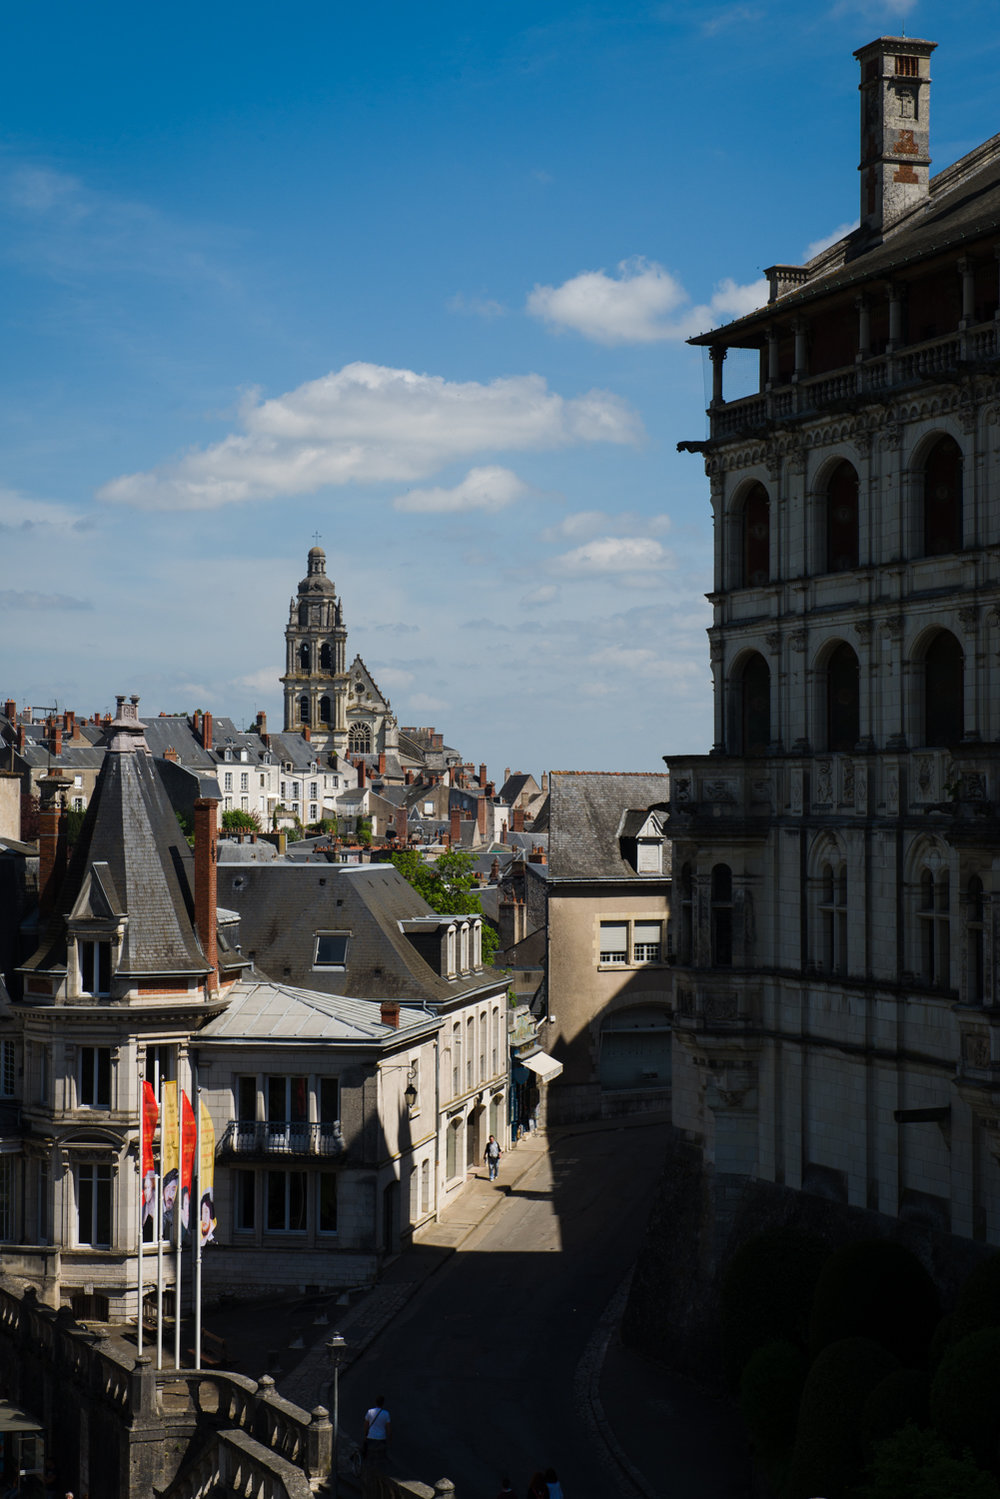 Blois, Loire Valley  PHOTOGRAPHY: William Lounsbury • NIKON D800 • AF-S NIKKOR 24-70MM F/2.8G ED @ 70MM • Ƒ/11 • 1/320 • ISO 200